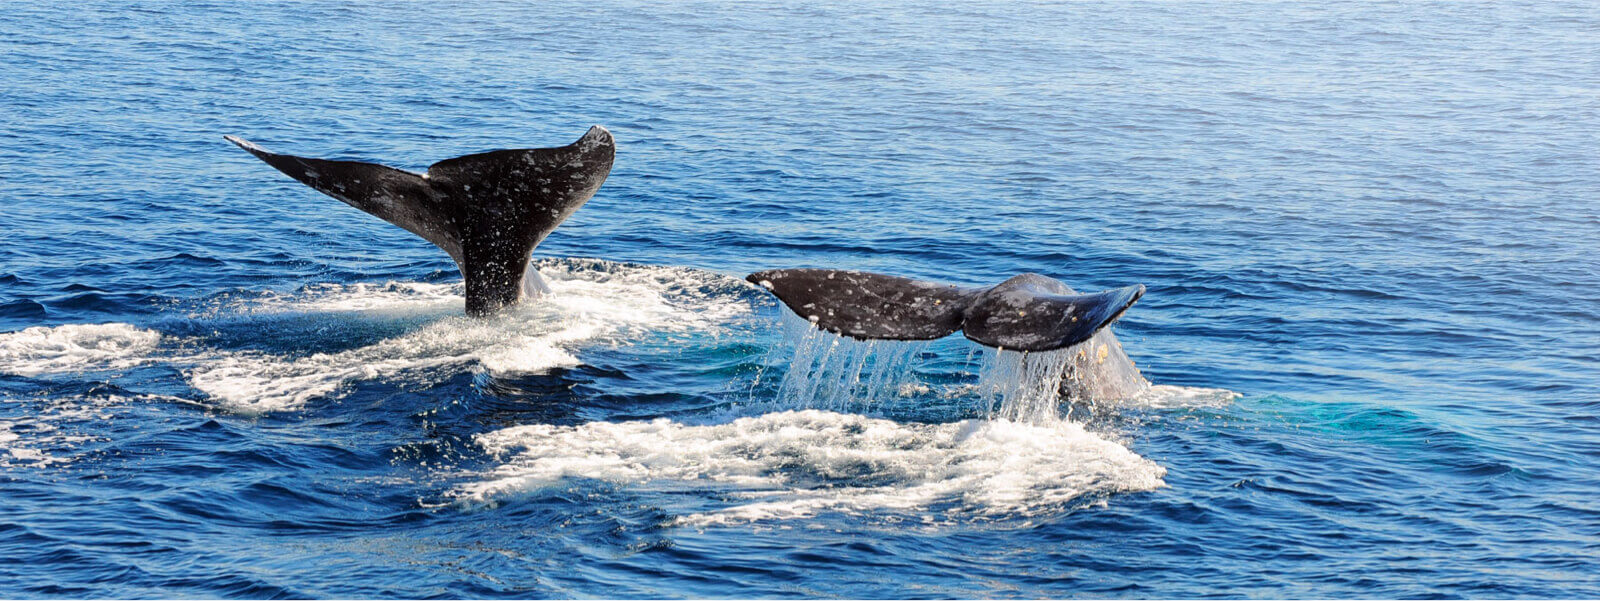 YachtLife's top Yachting Activities in Newport Beach - Whale Watching